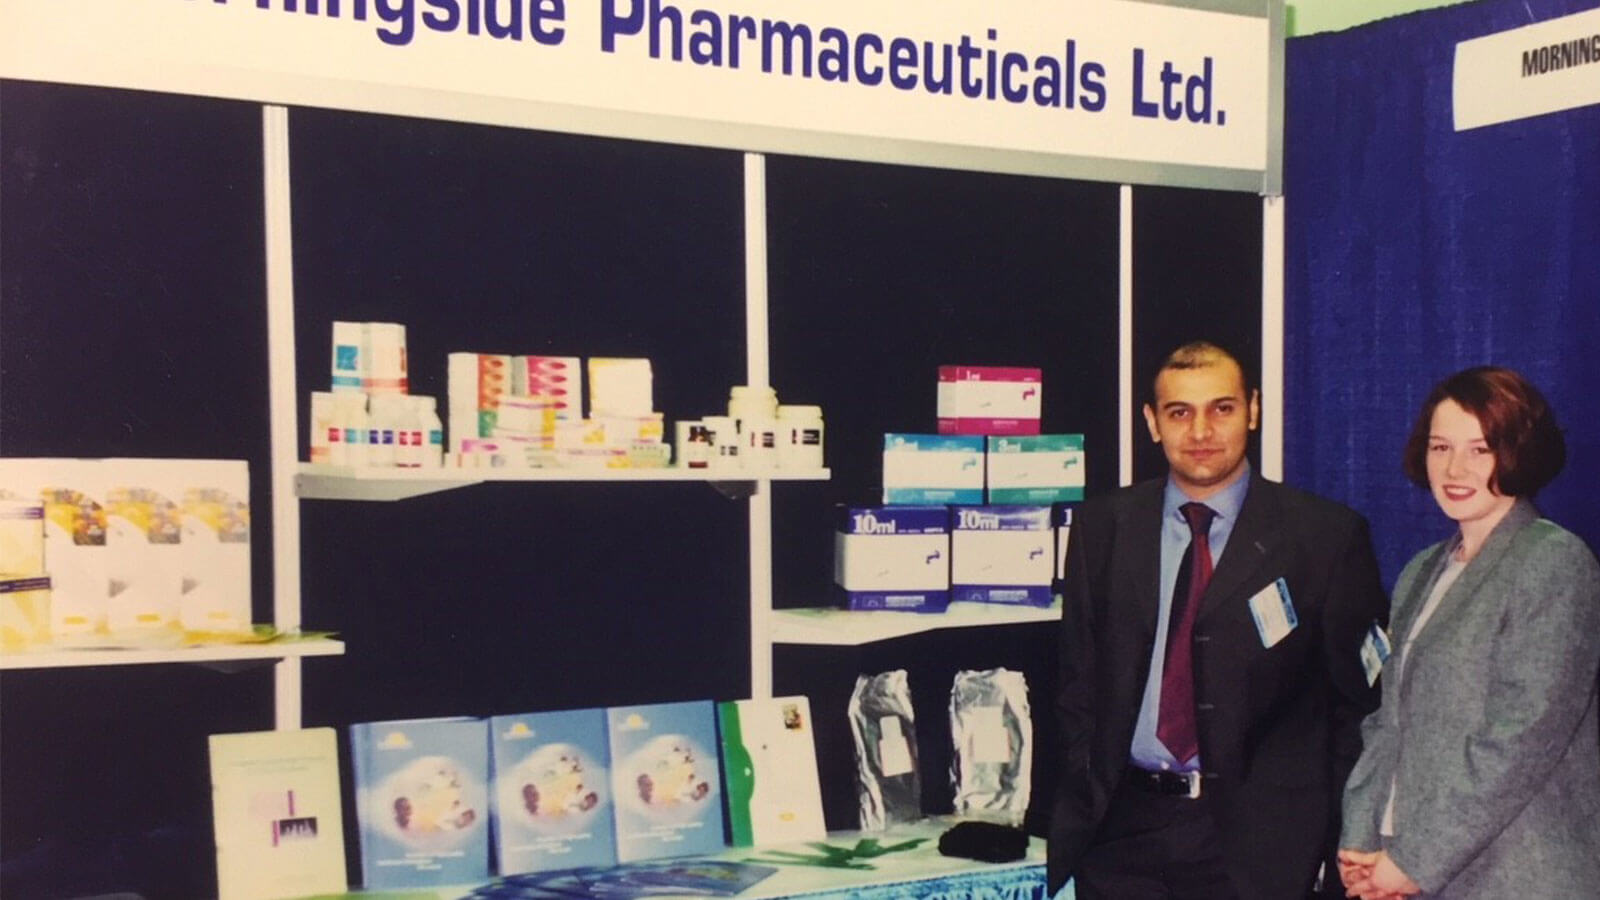 Morningside Pharmaceuticals Ltd has a rich history